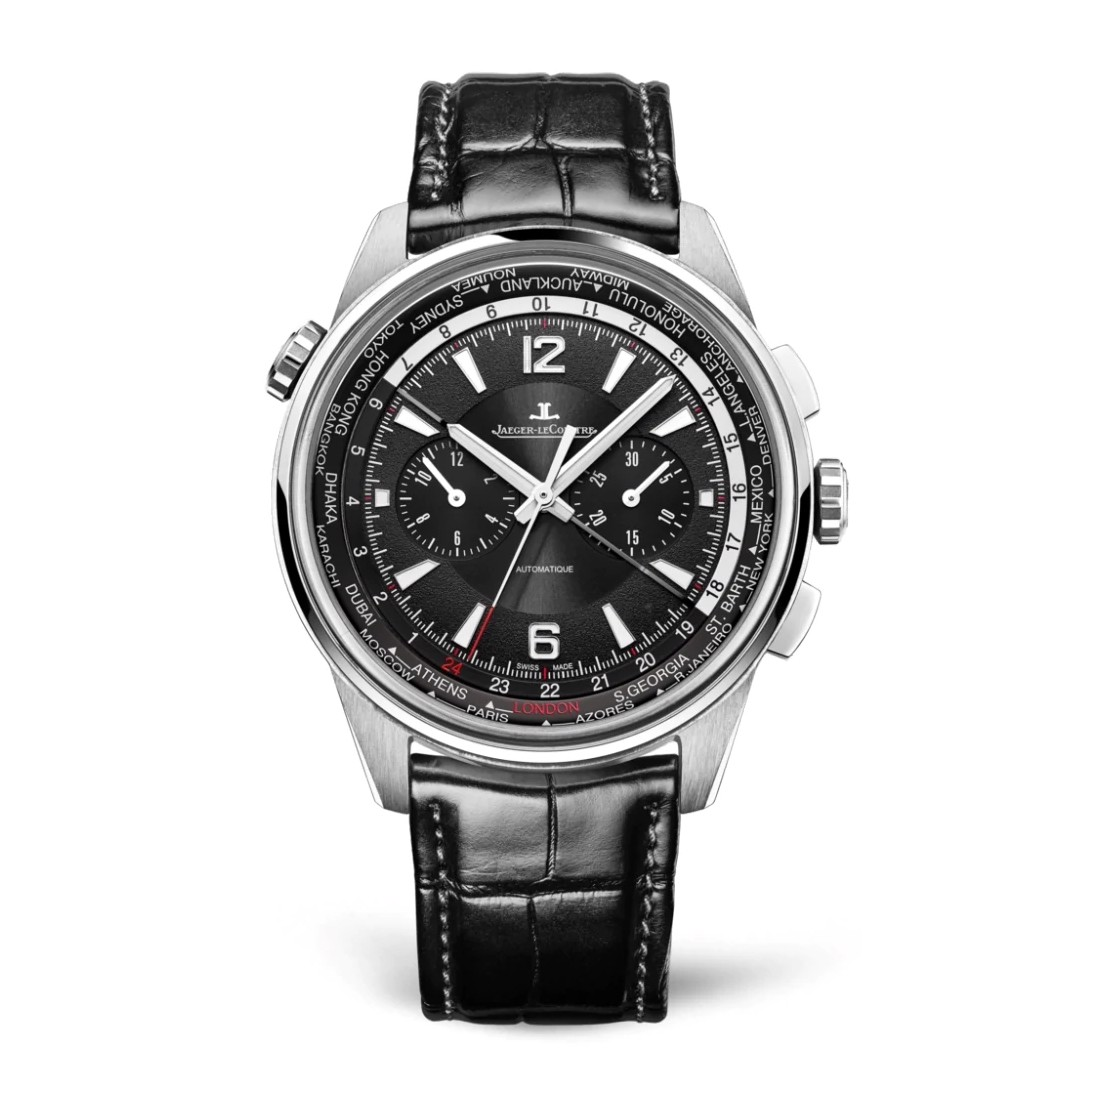 Jaeger Le Coultre Polaris Chronograph WT 905T470